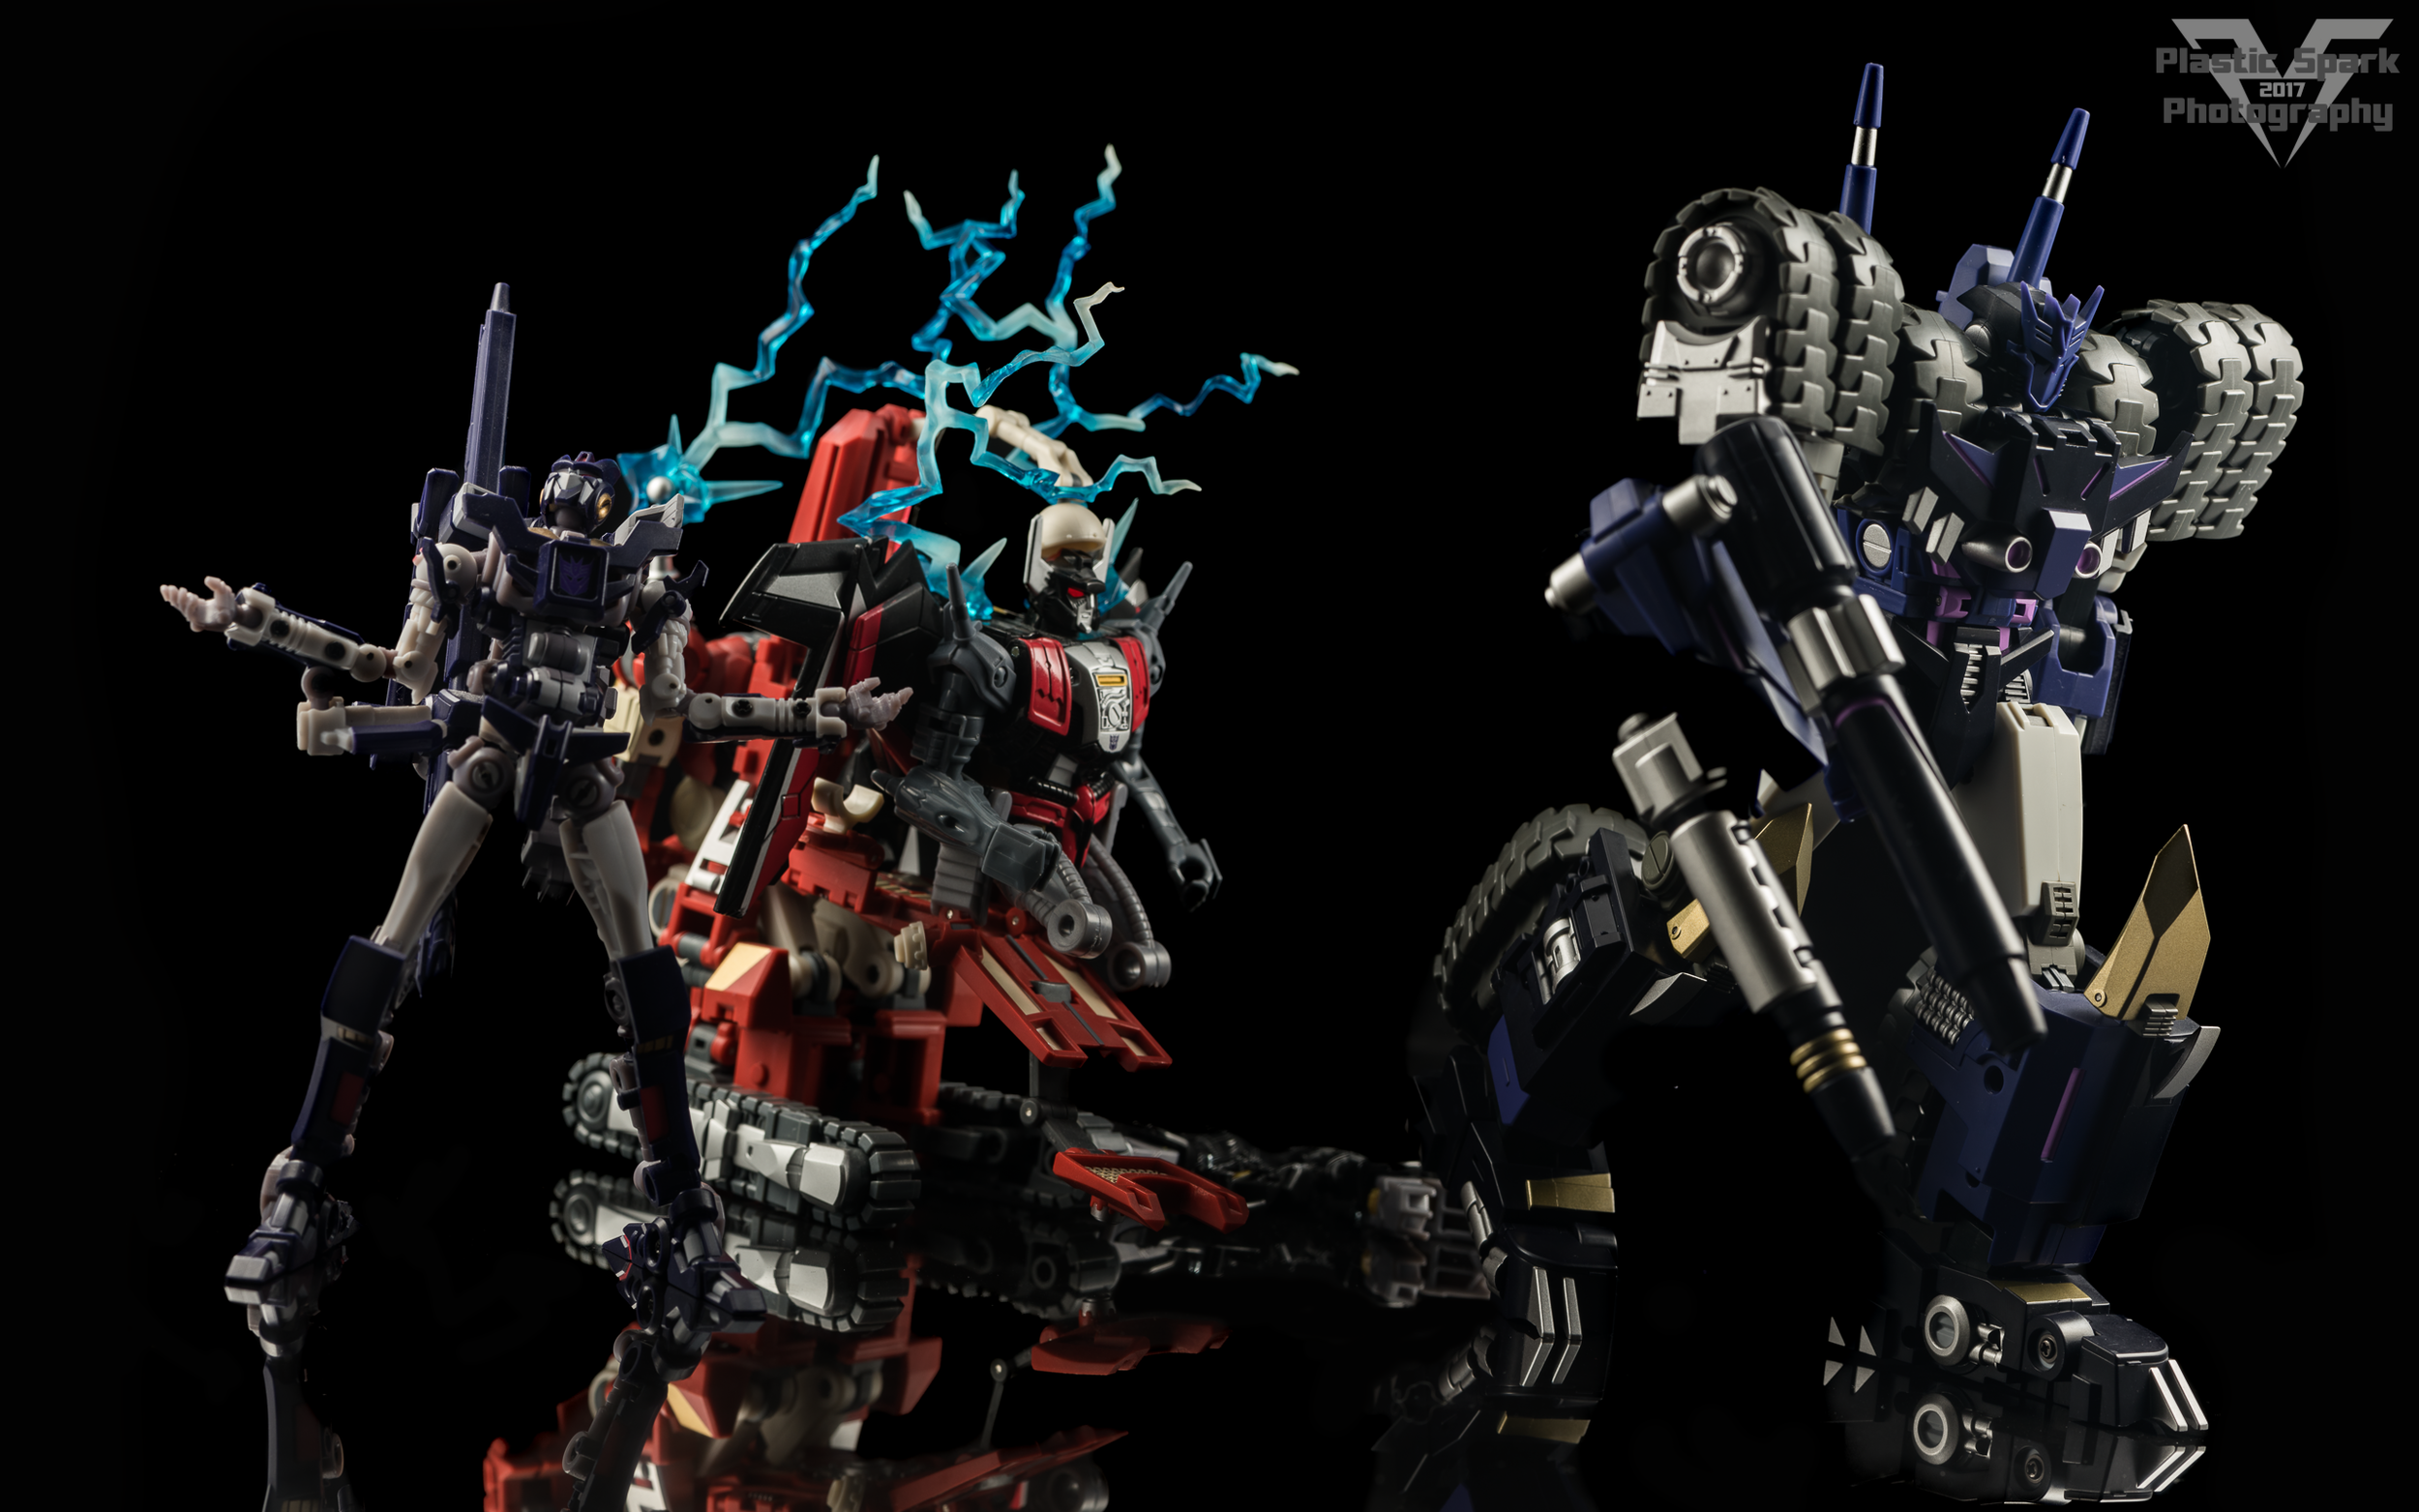 Mastermind-Creations-R-19-Kultur-(12-of-24).png